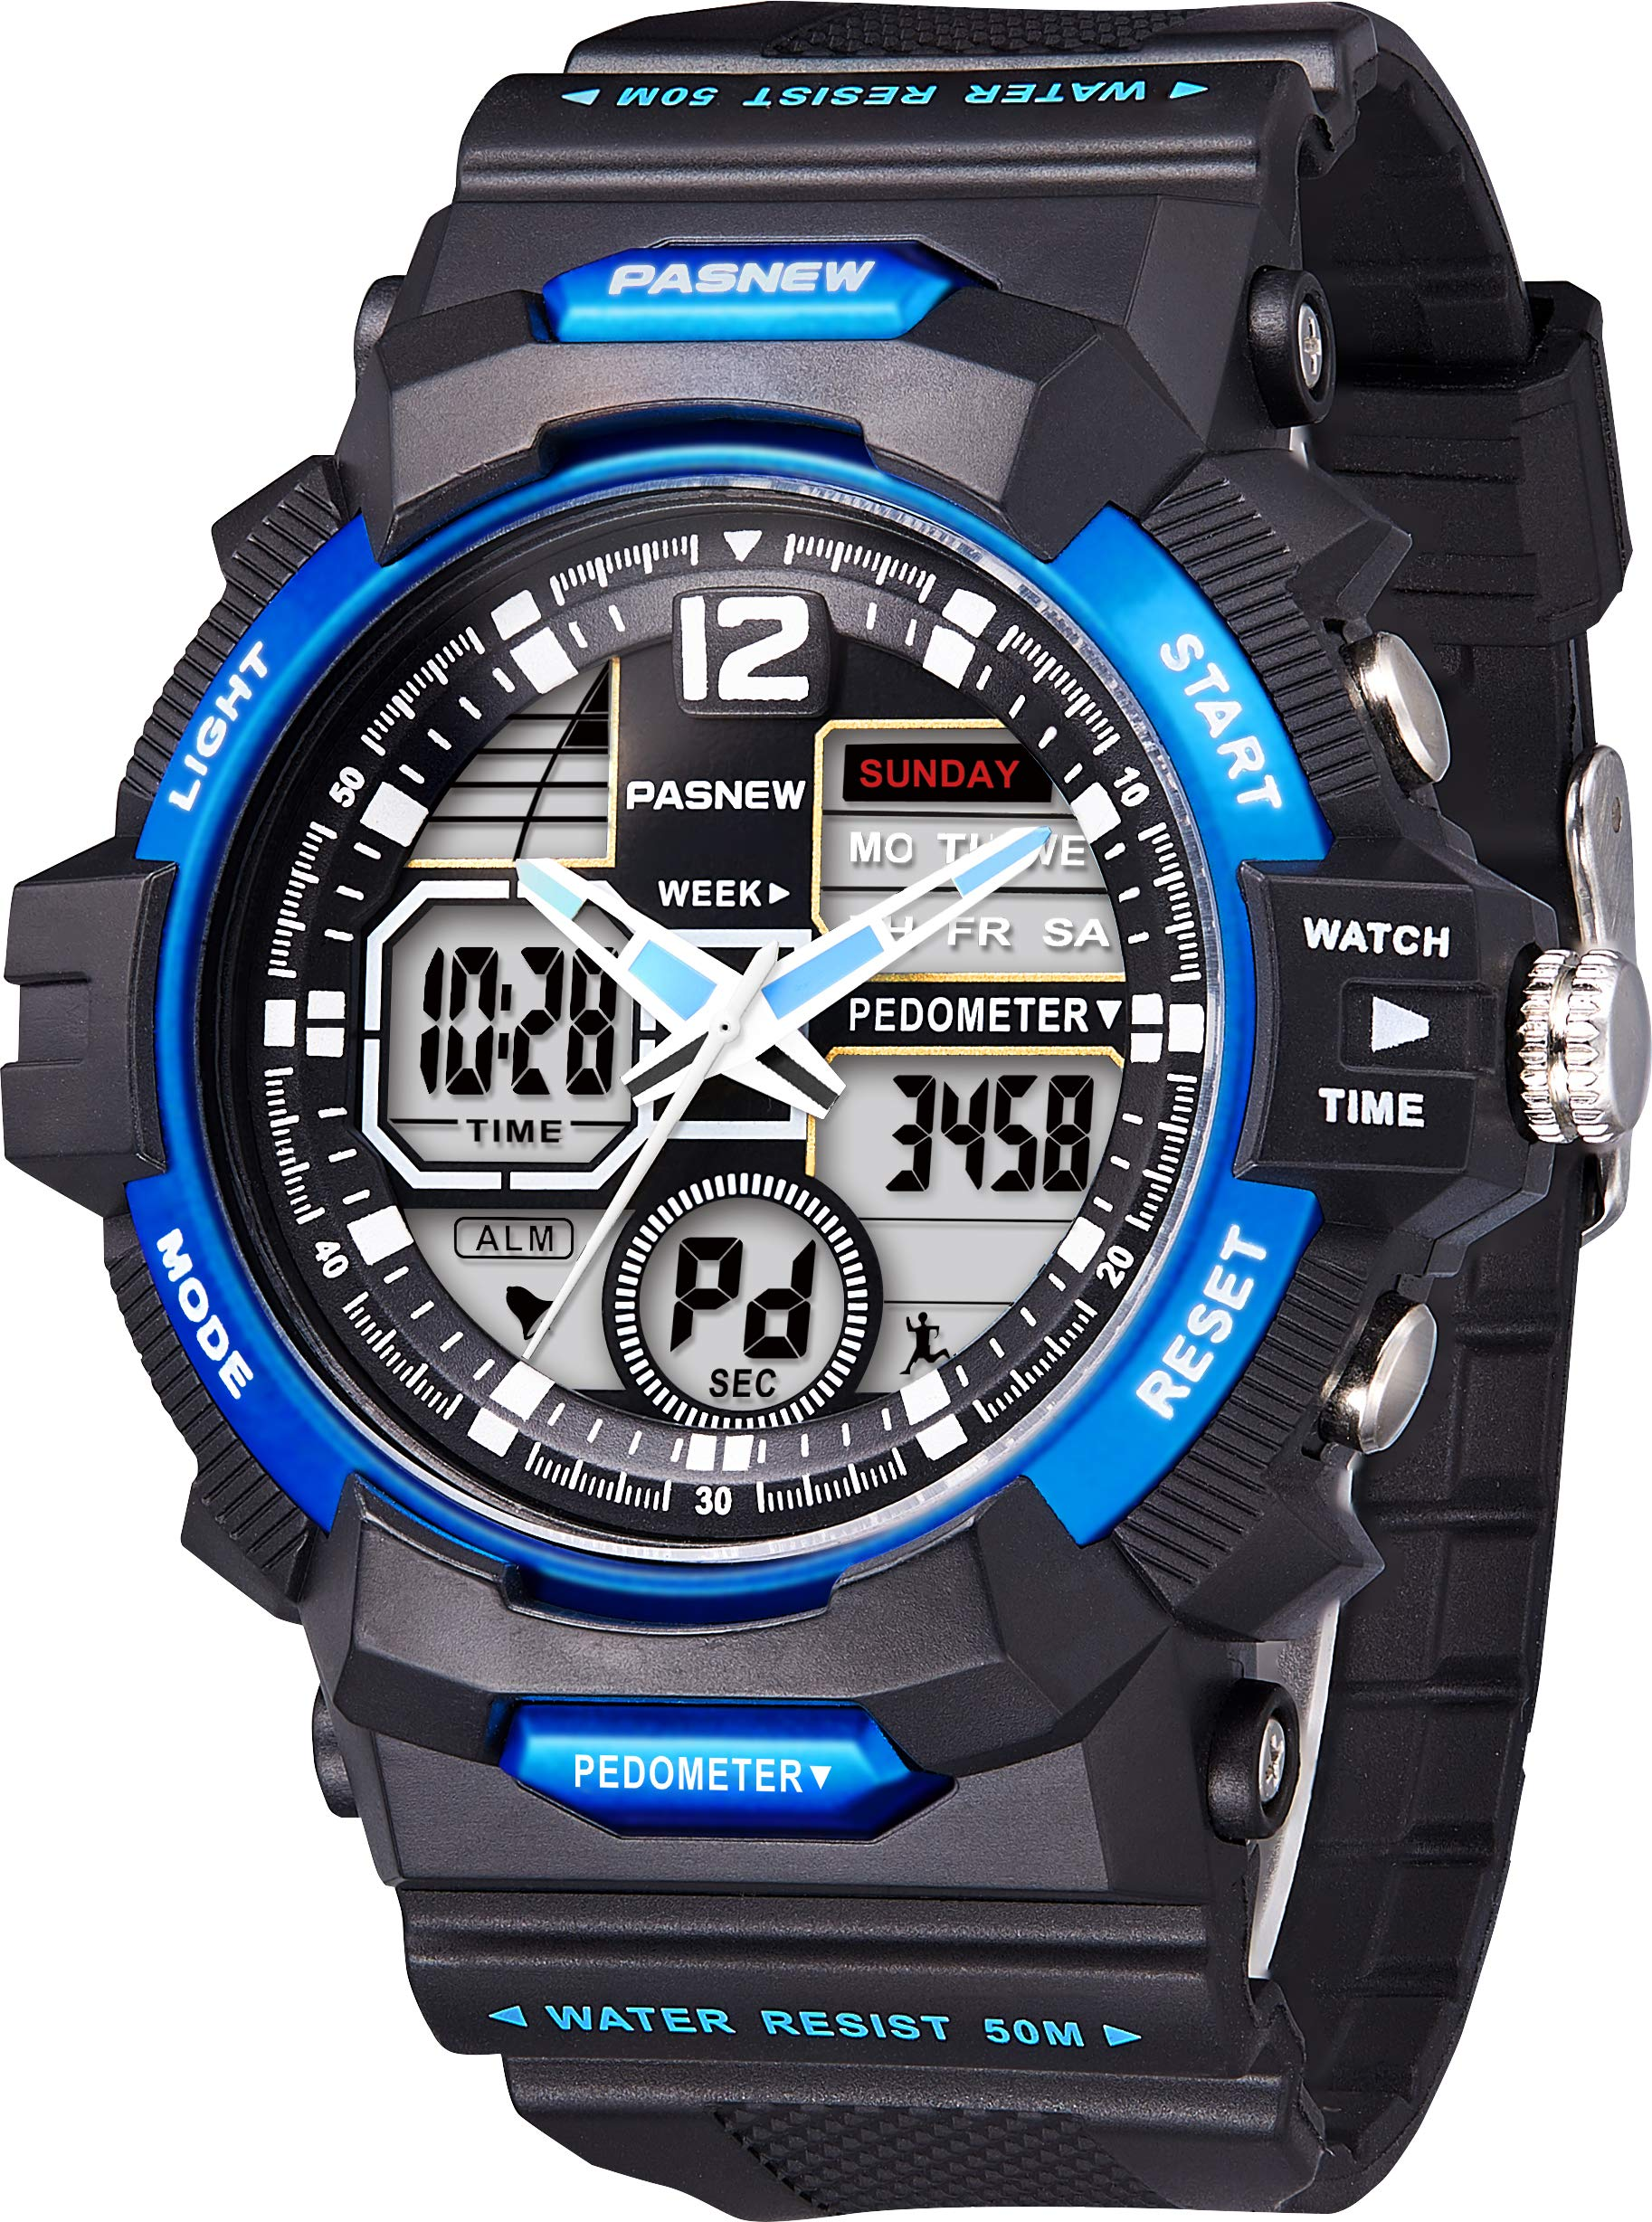 PASNEW Kids Watch Multi Function Digital-Analog Sport Watches for 13-Year Old or Above Children-Black Blue by PASNEW